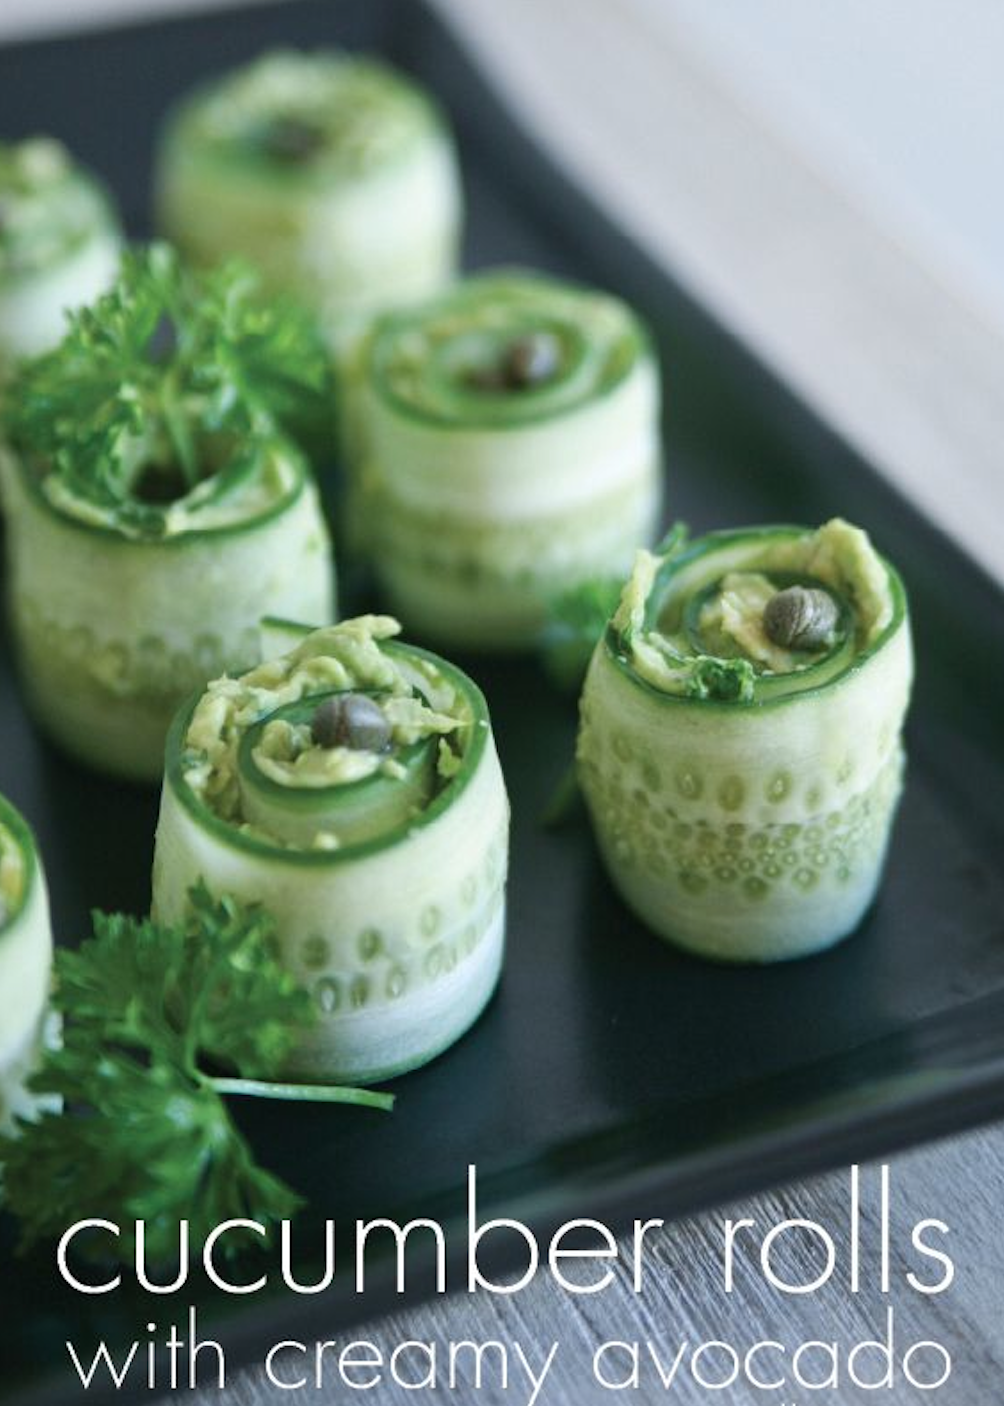 Italian sushi story come fare il sushi allitaliana food ideas healthy and delicious cucumber roll with creamy avocado simply the best healthy appetizer thats naturally gluten free dairy free vegan and paleo forumfinder Images